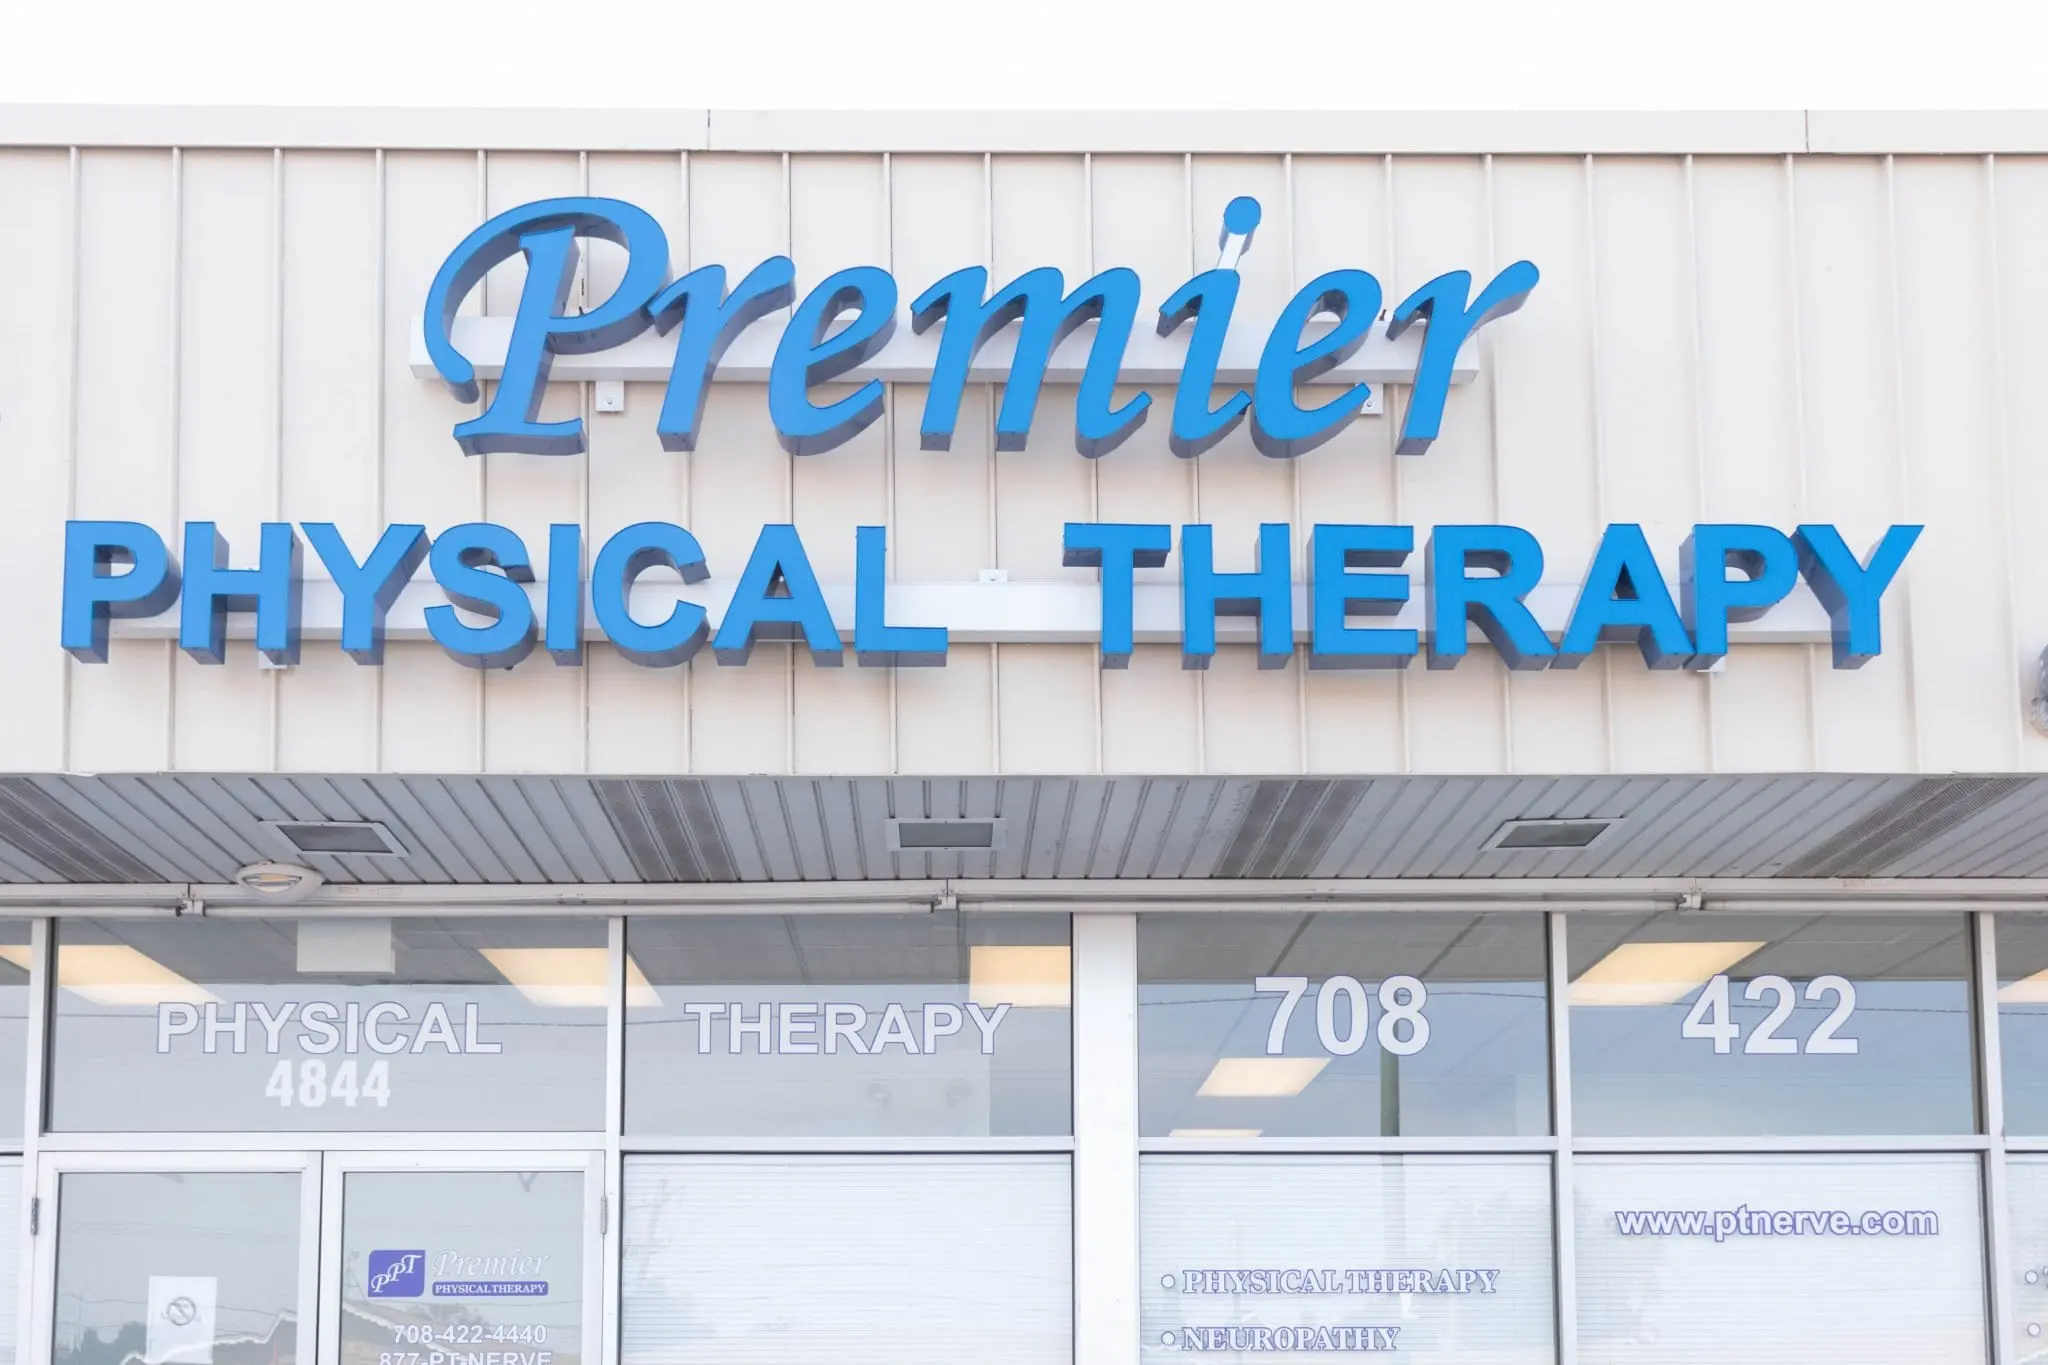 Premier-Physical-Therapy-Midway-Location